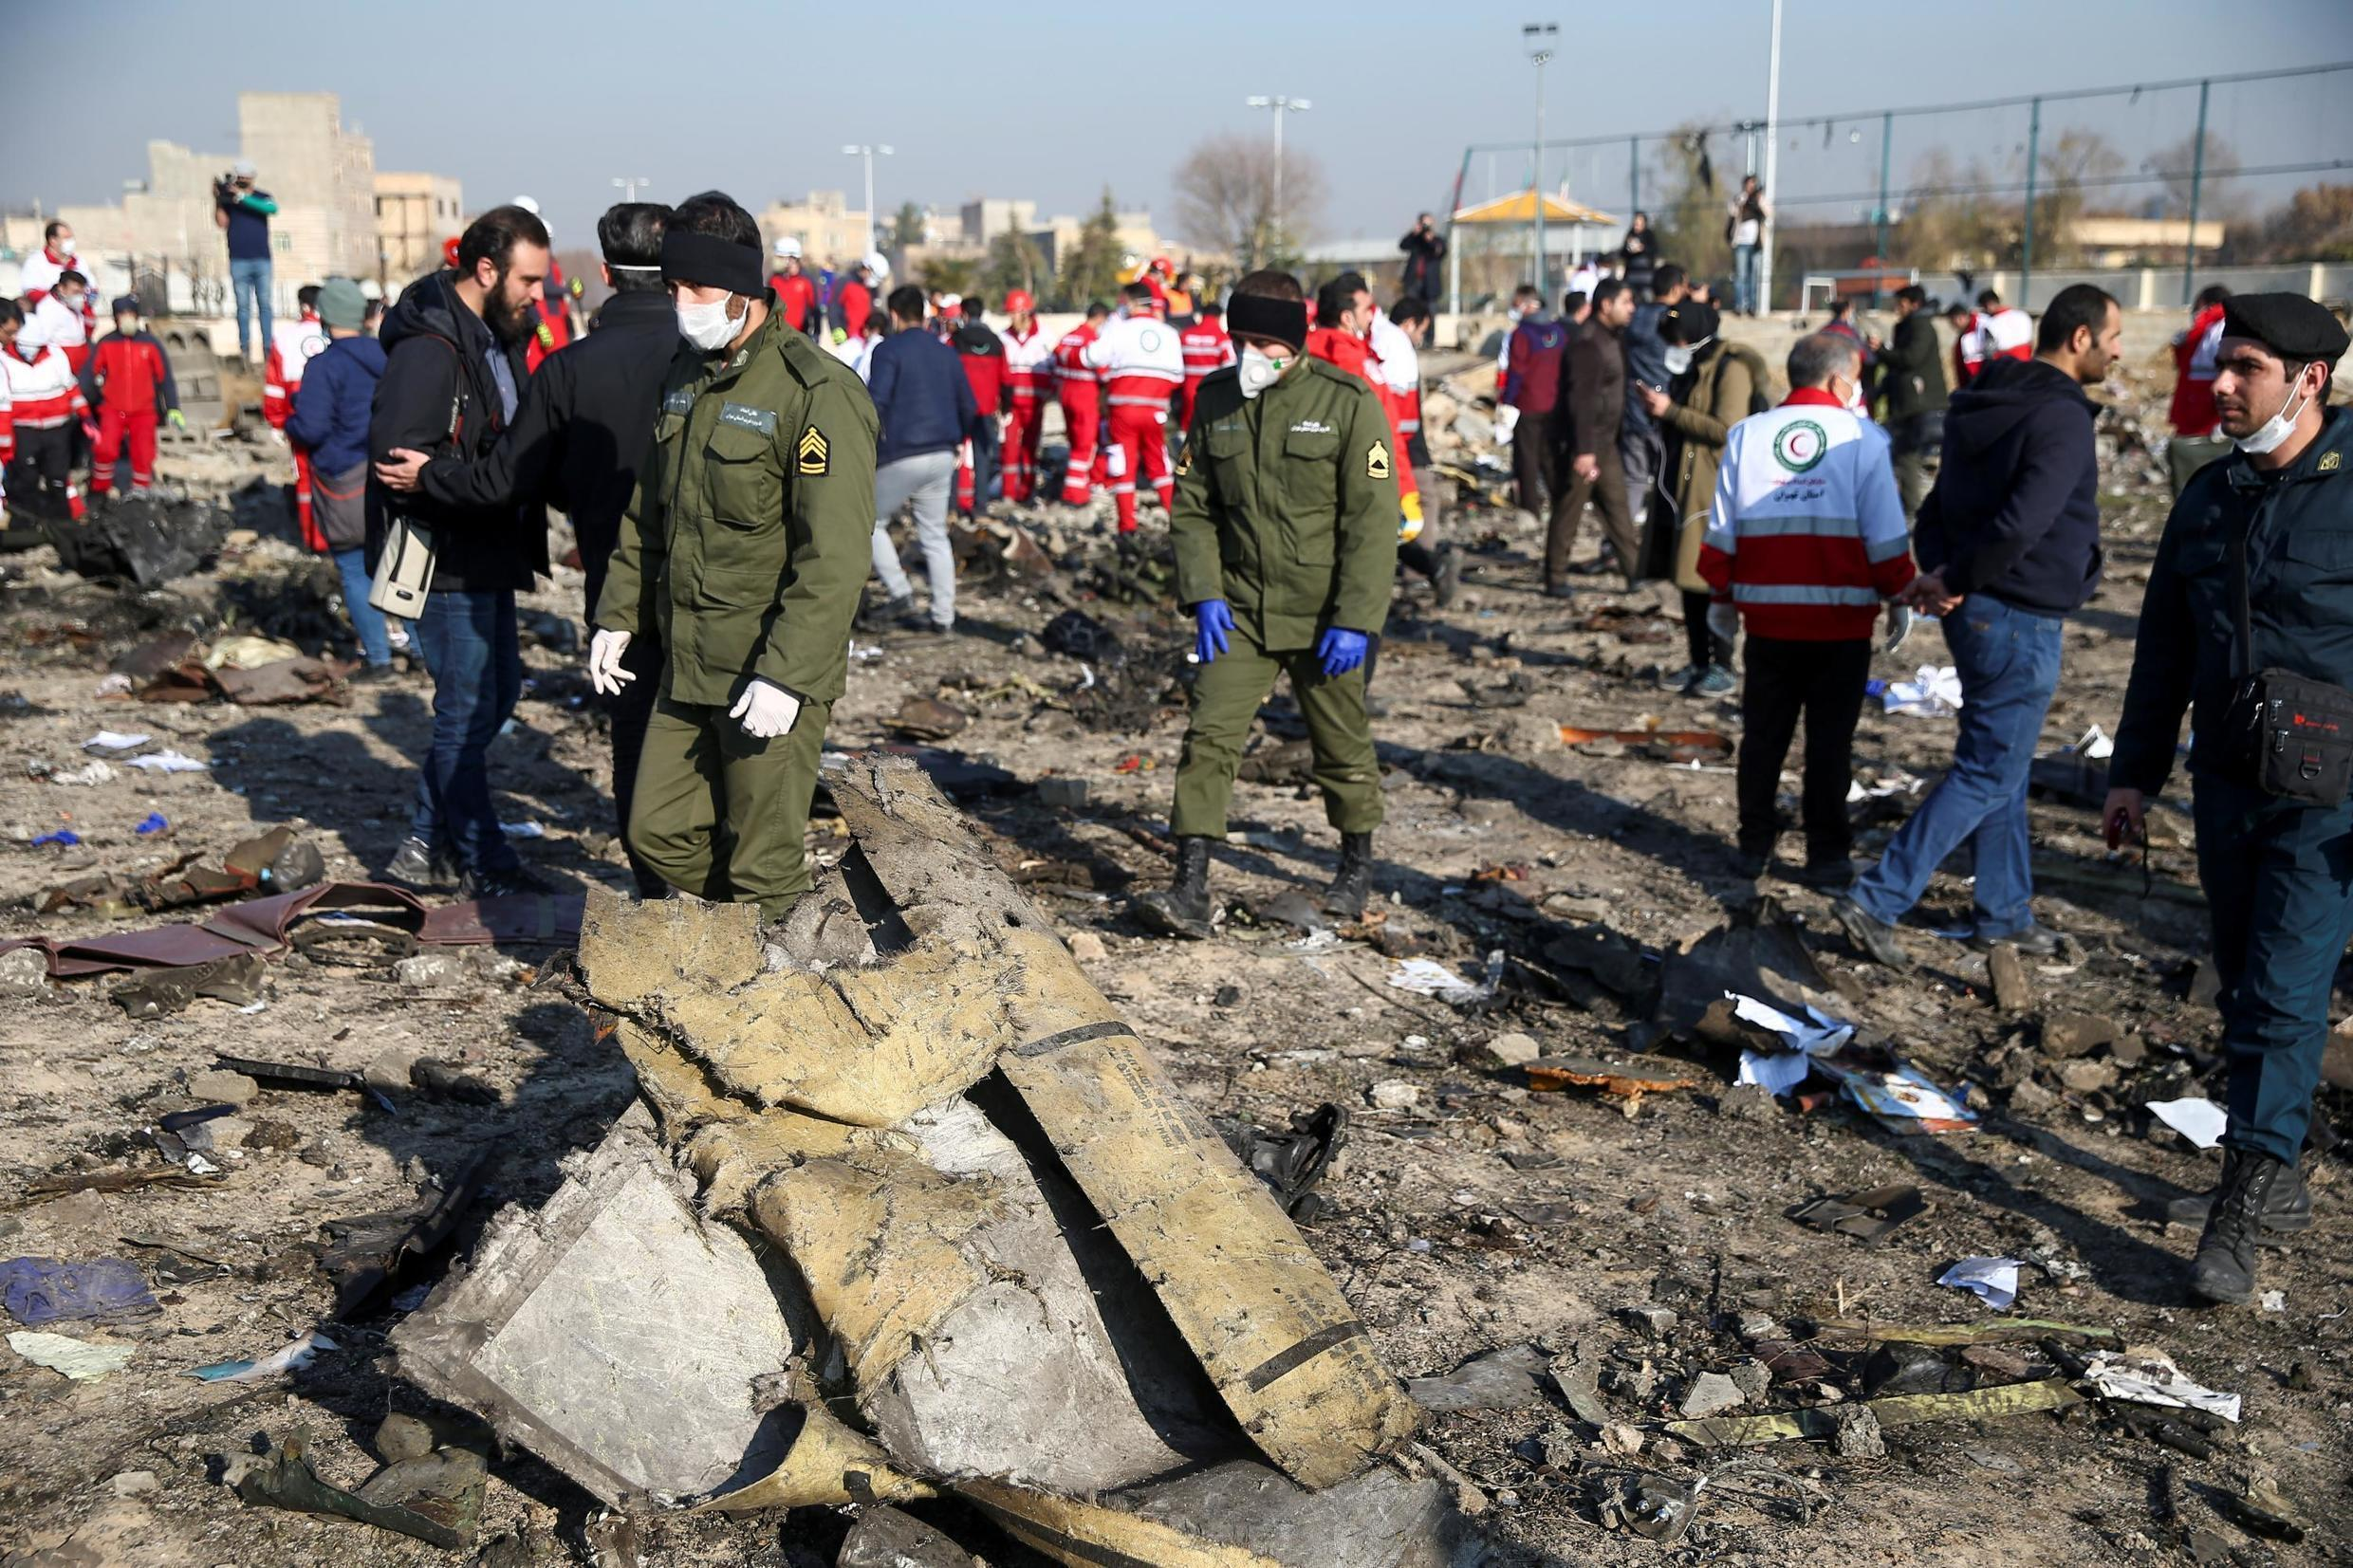 Security officers and Red Crescent workers are seen at the site where the Ukraine International Airlines plane crashed after take-off from Iran's Imam Khomeini airport, on the outskirts of Tehran, Iran January 8, 2020.